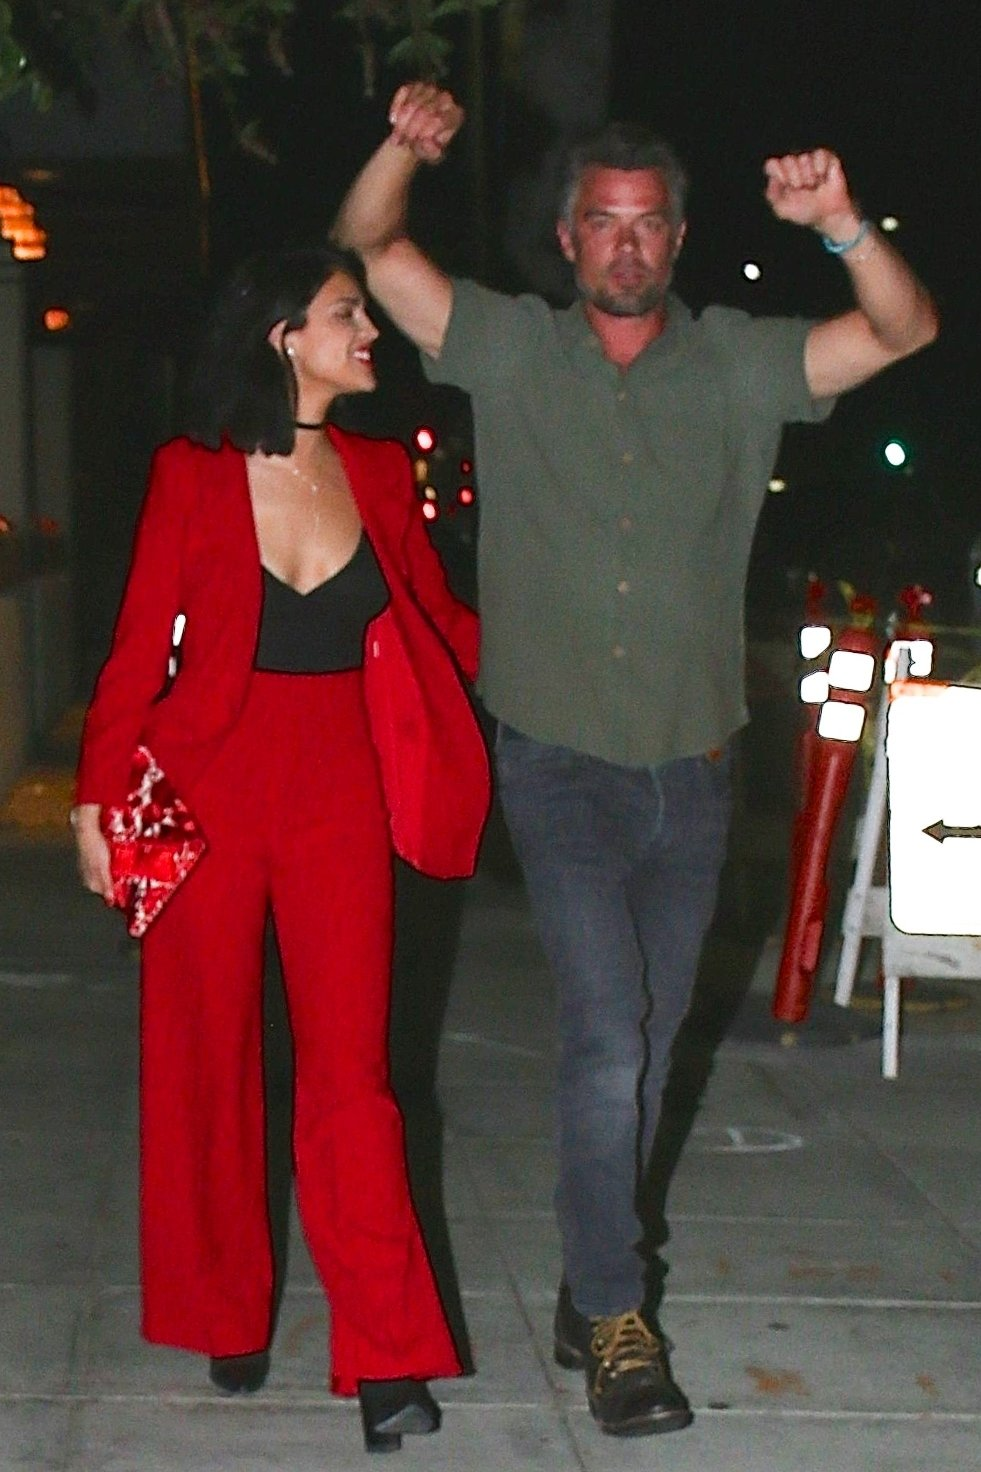 Beverly Hills, CA  - *PREMIUM-EXCLUSIVE*  - Rumored couple, Josh Duhamel and Eiza Gonzalez, confirming their secretive romance. The pair are all smiles as they exit a Beverly Hills restaurant. Eiza isn't hard to miss in a low cut red outfit while Josh keeps it casual. The pair seems loved up but as the cameras are noticed they try to distance themselves. Shot 06/08/18.  Pictured: Eiza Gonzalez, Josh Duhamel  BACKGRID USA 9 JUNE 2018, Image: 374321553, License: Rights-managed, Restrictions: , Model Release: no, Credit line: Profimedia, AKM-GSI